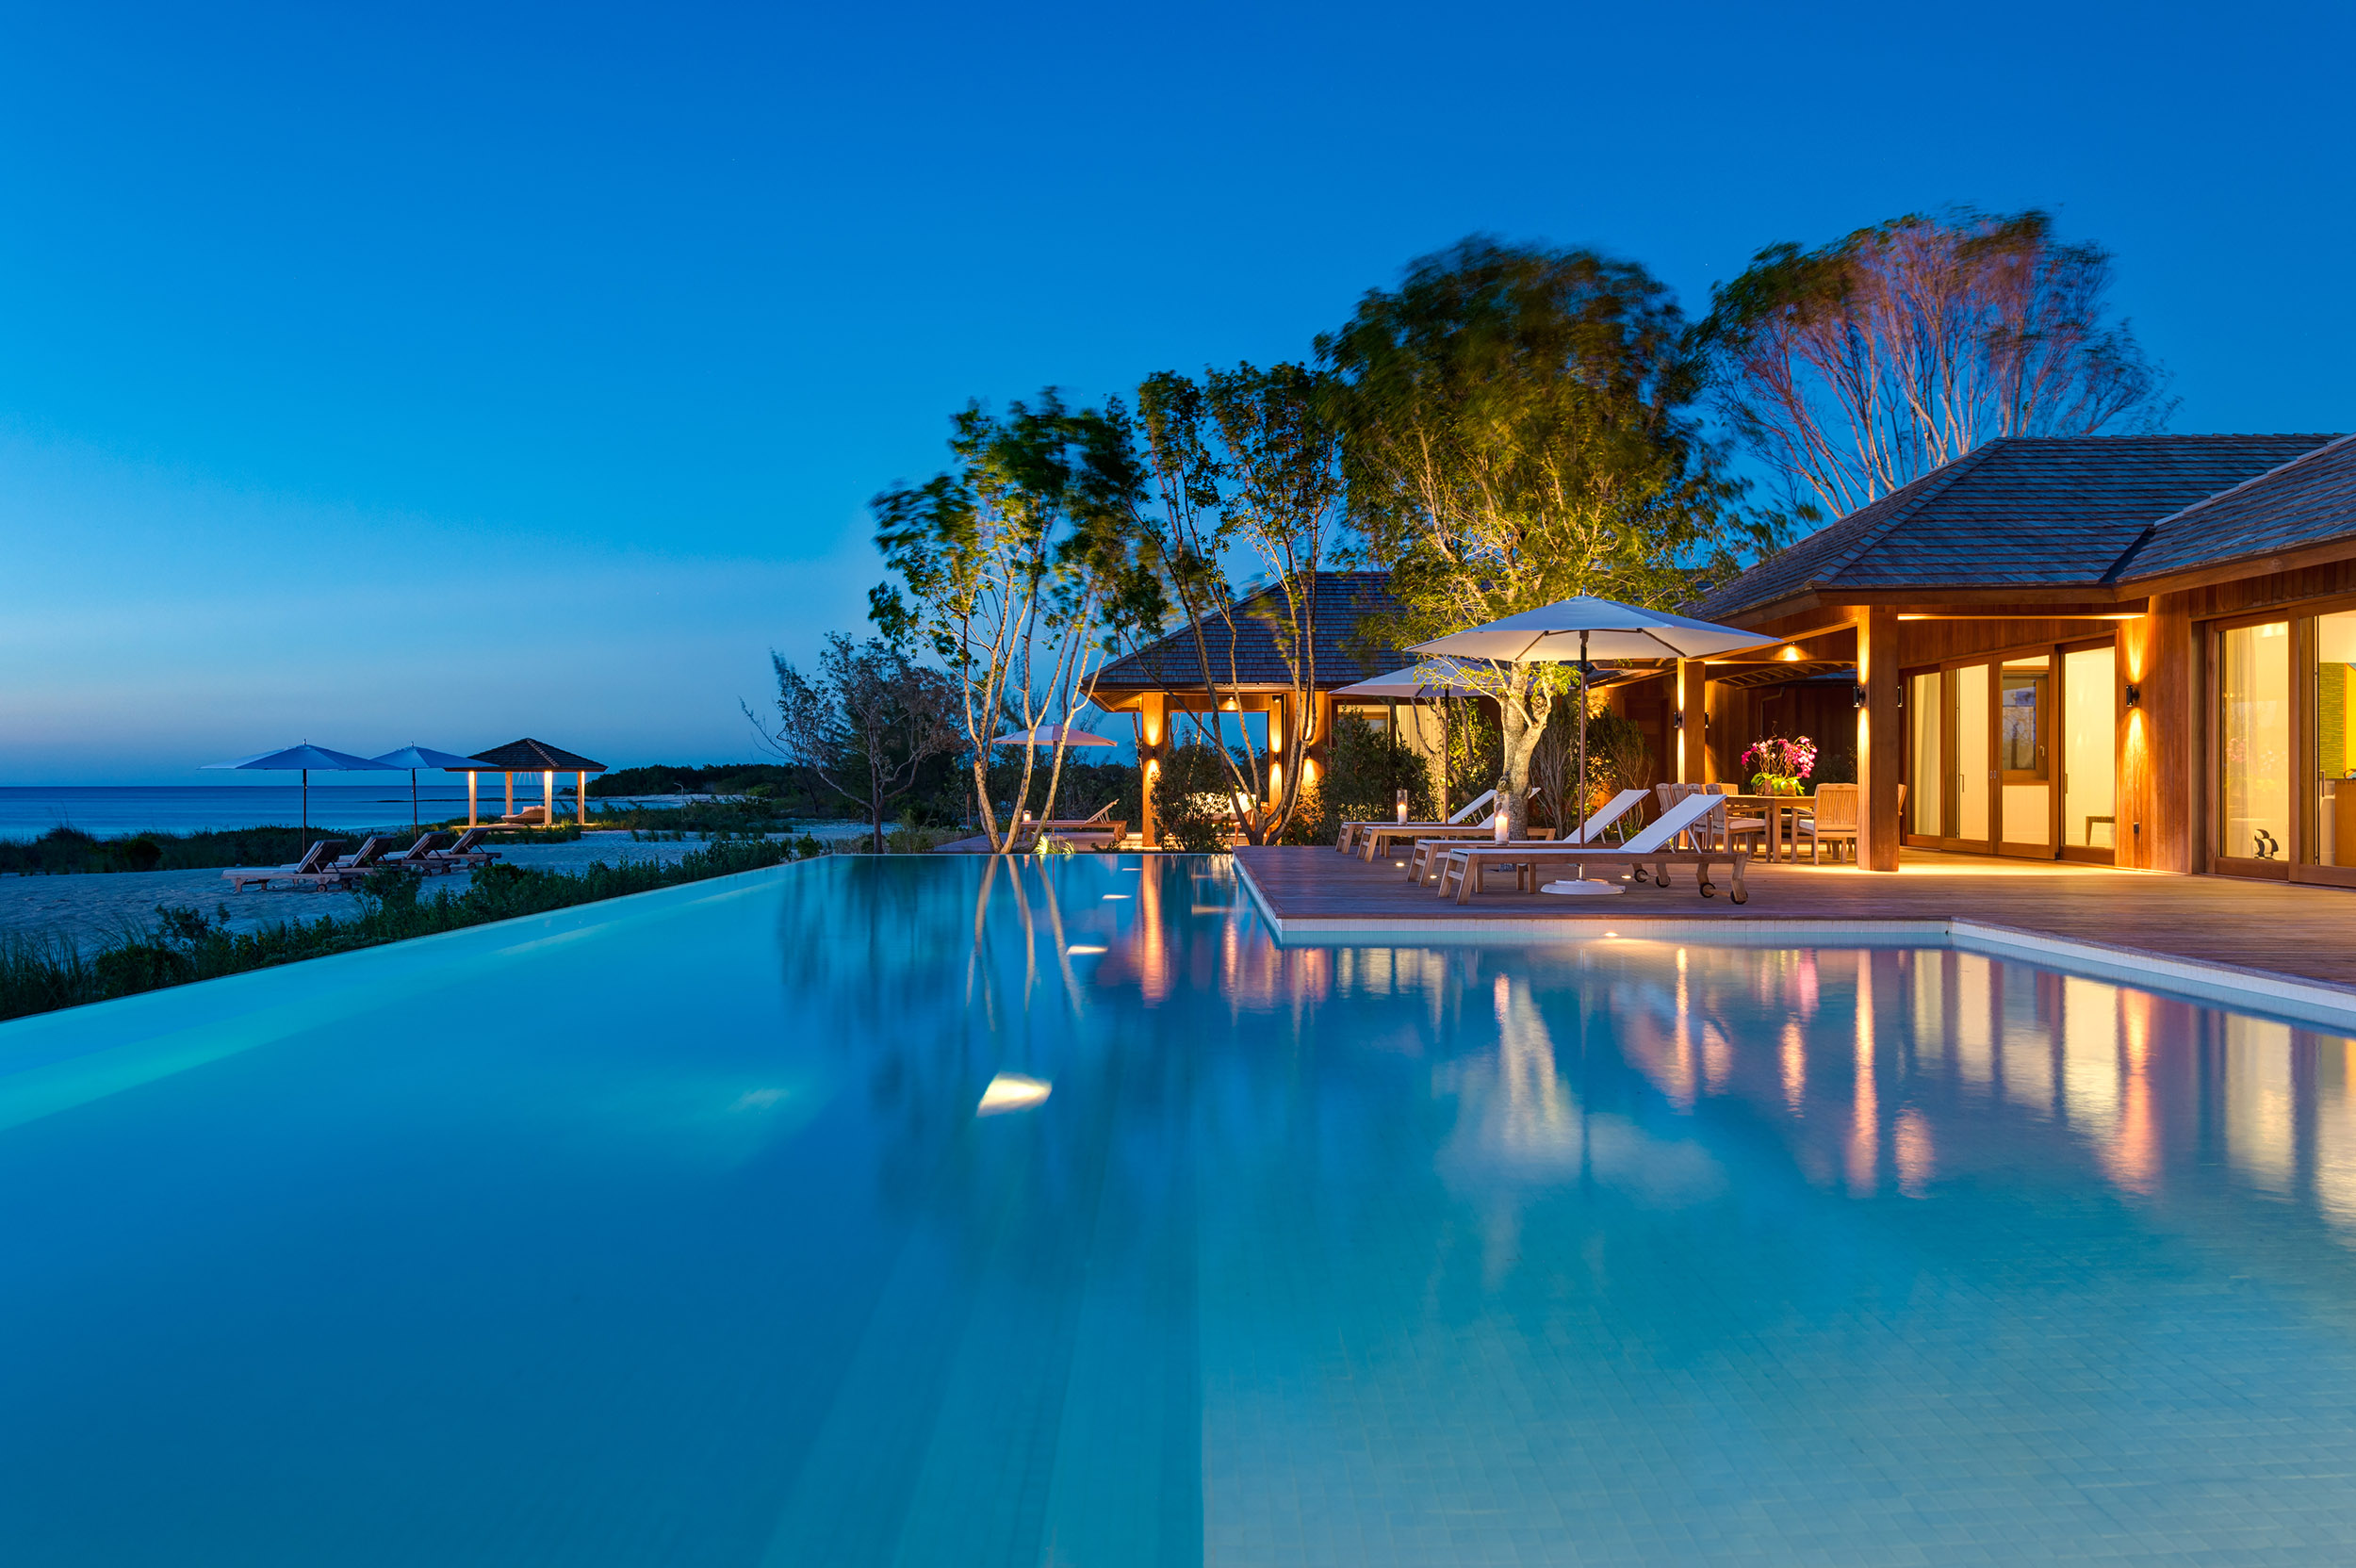 Serenity - evening view across the pool